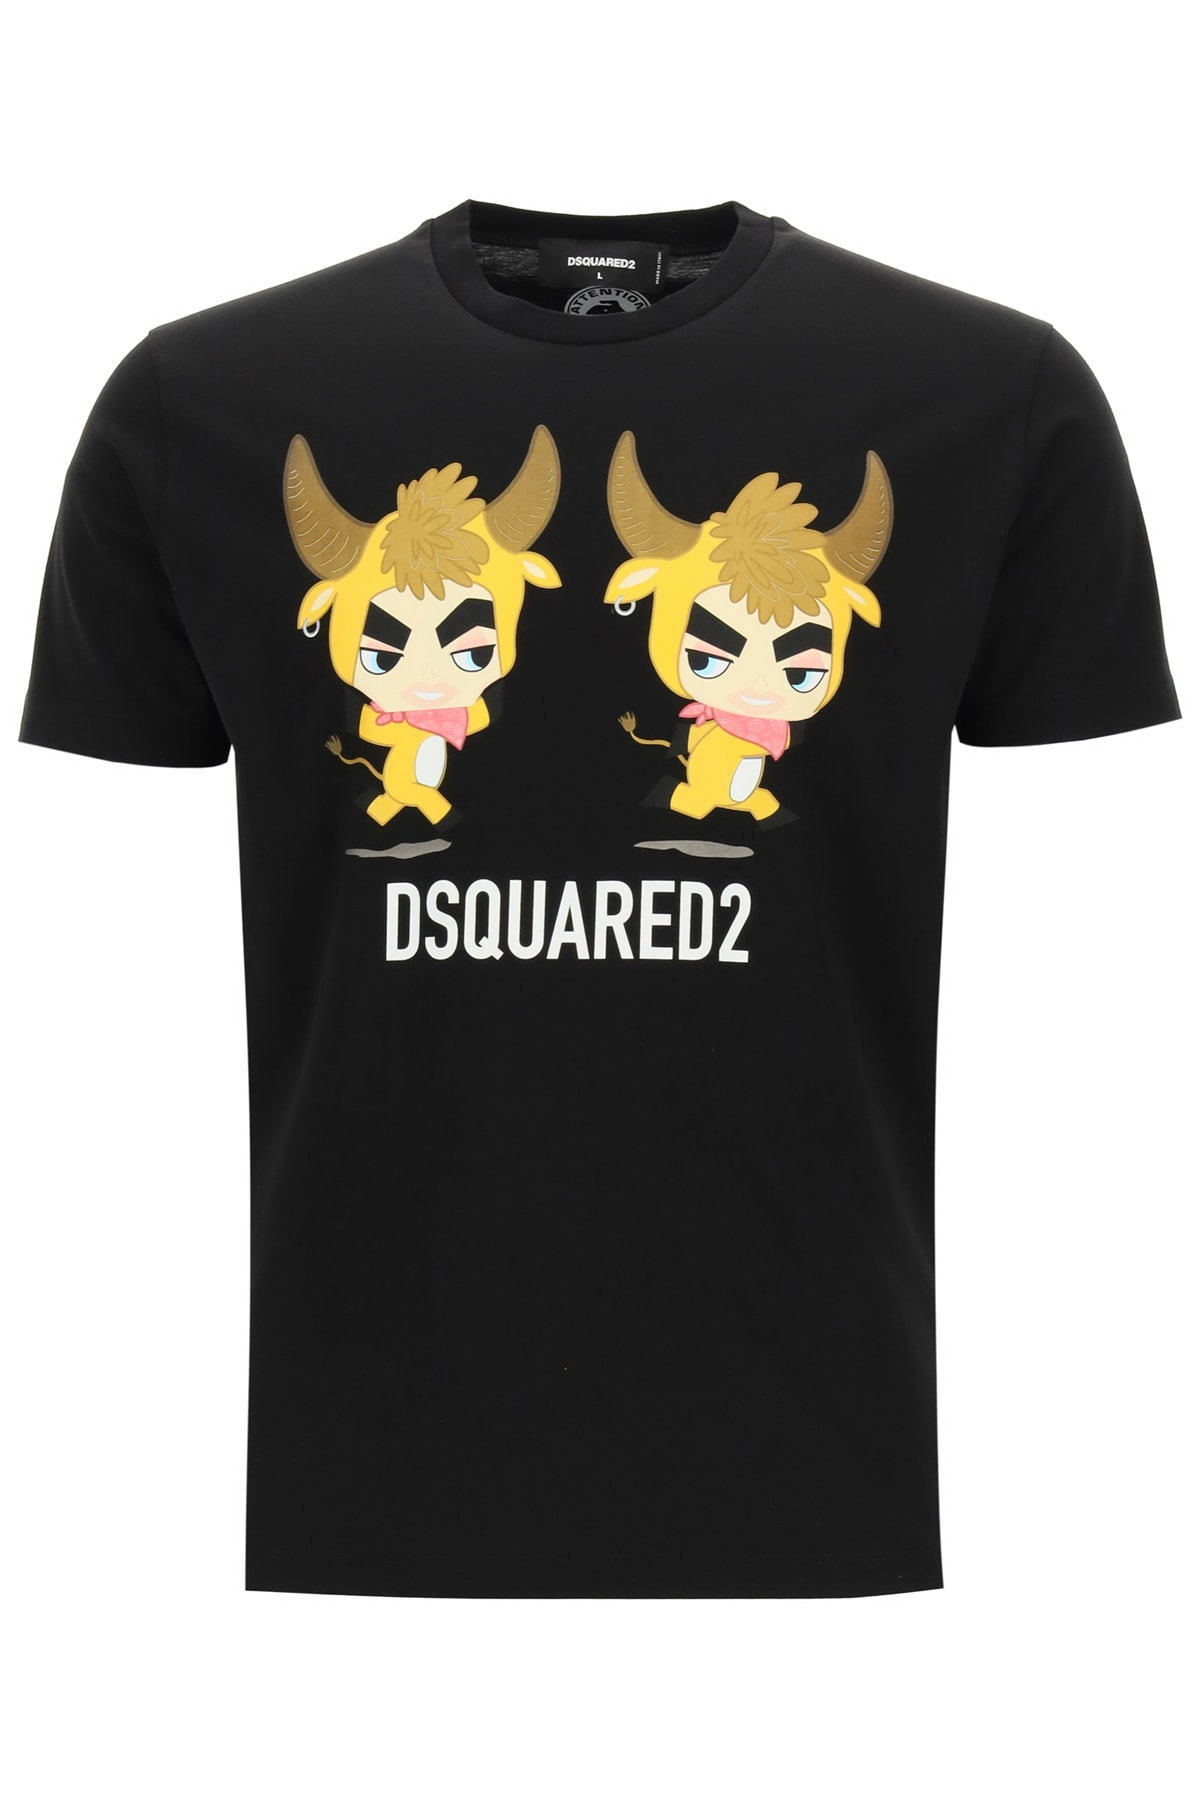 DSQUARED2 YEAR OF THE OX PRINT T-SHIRT